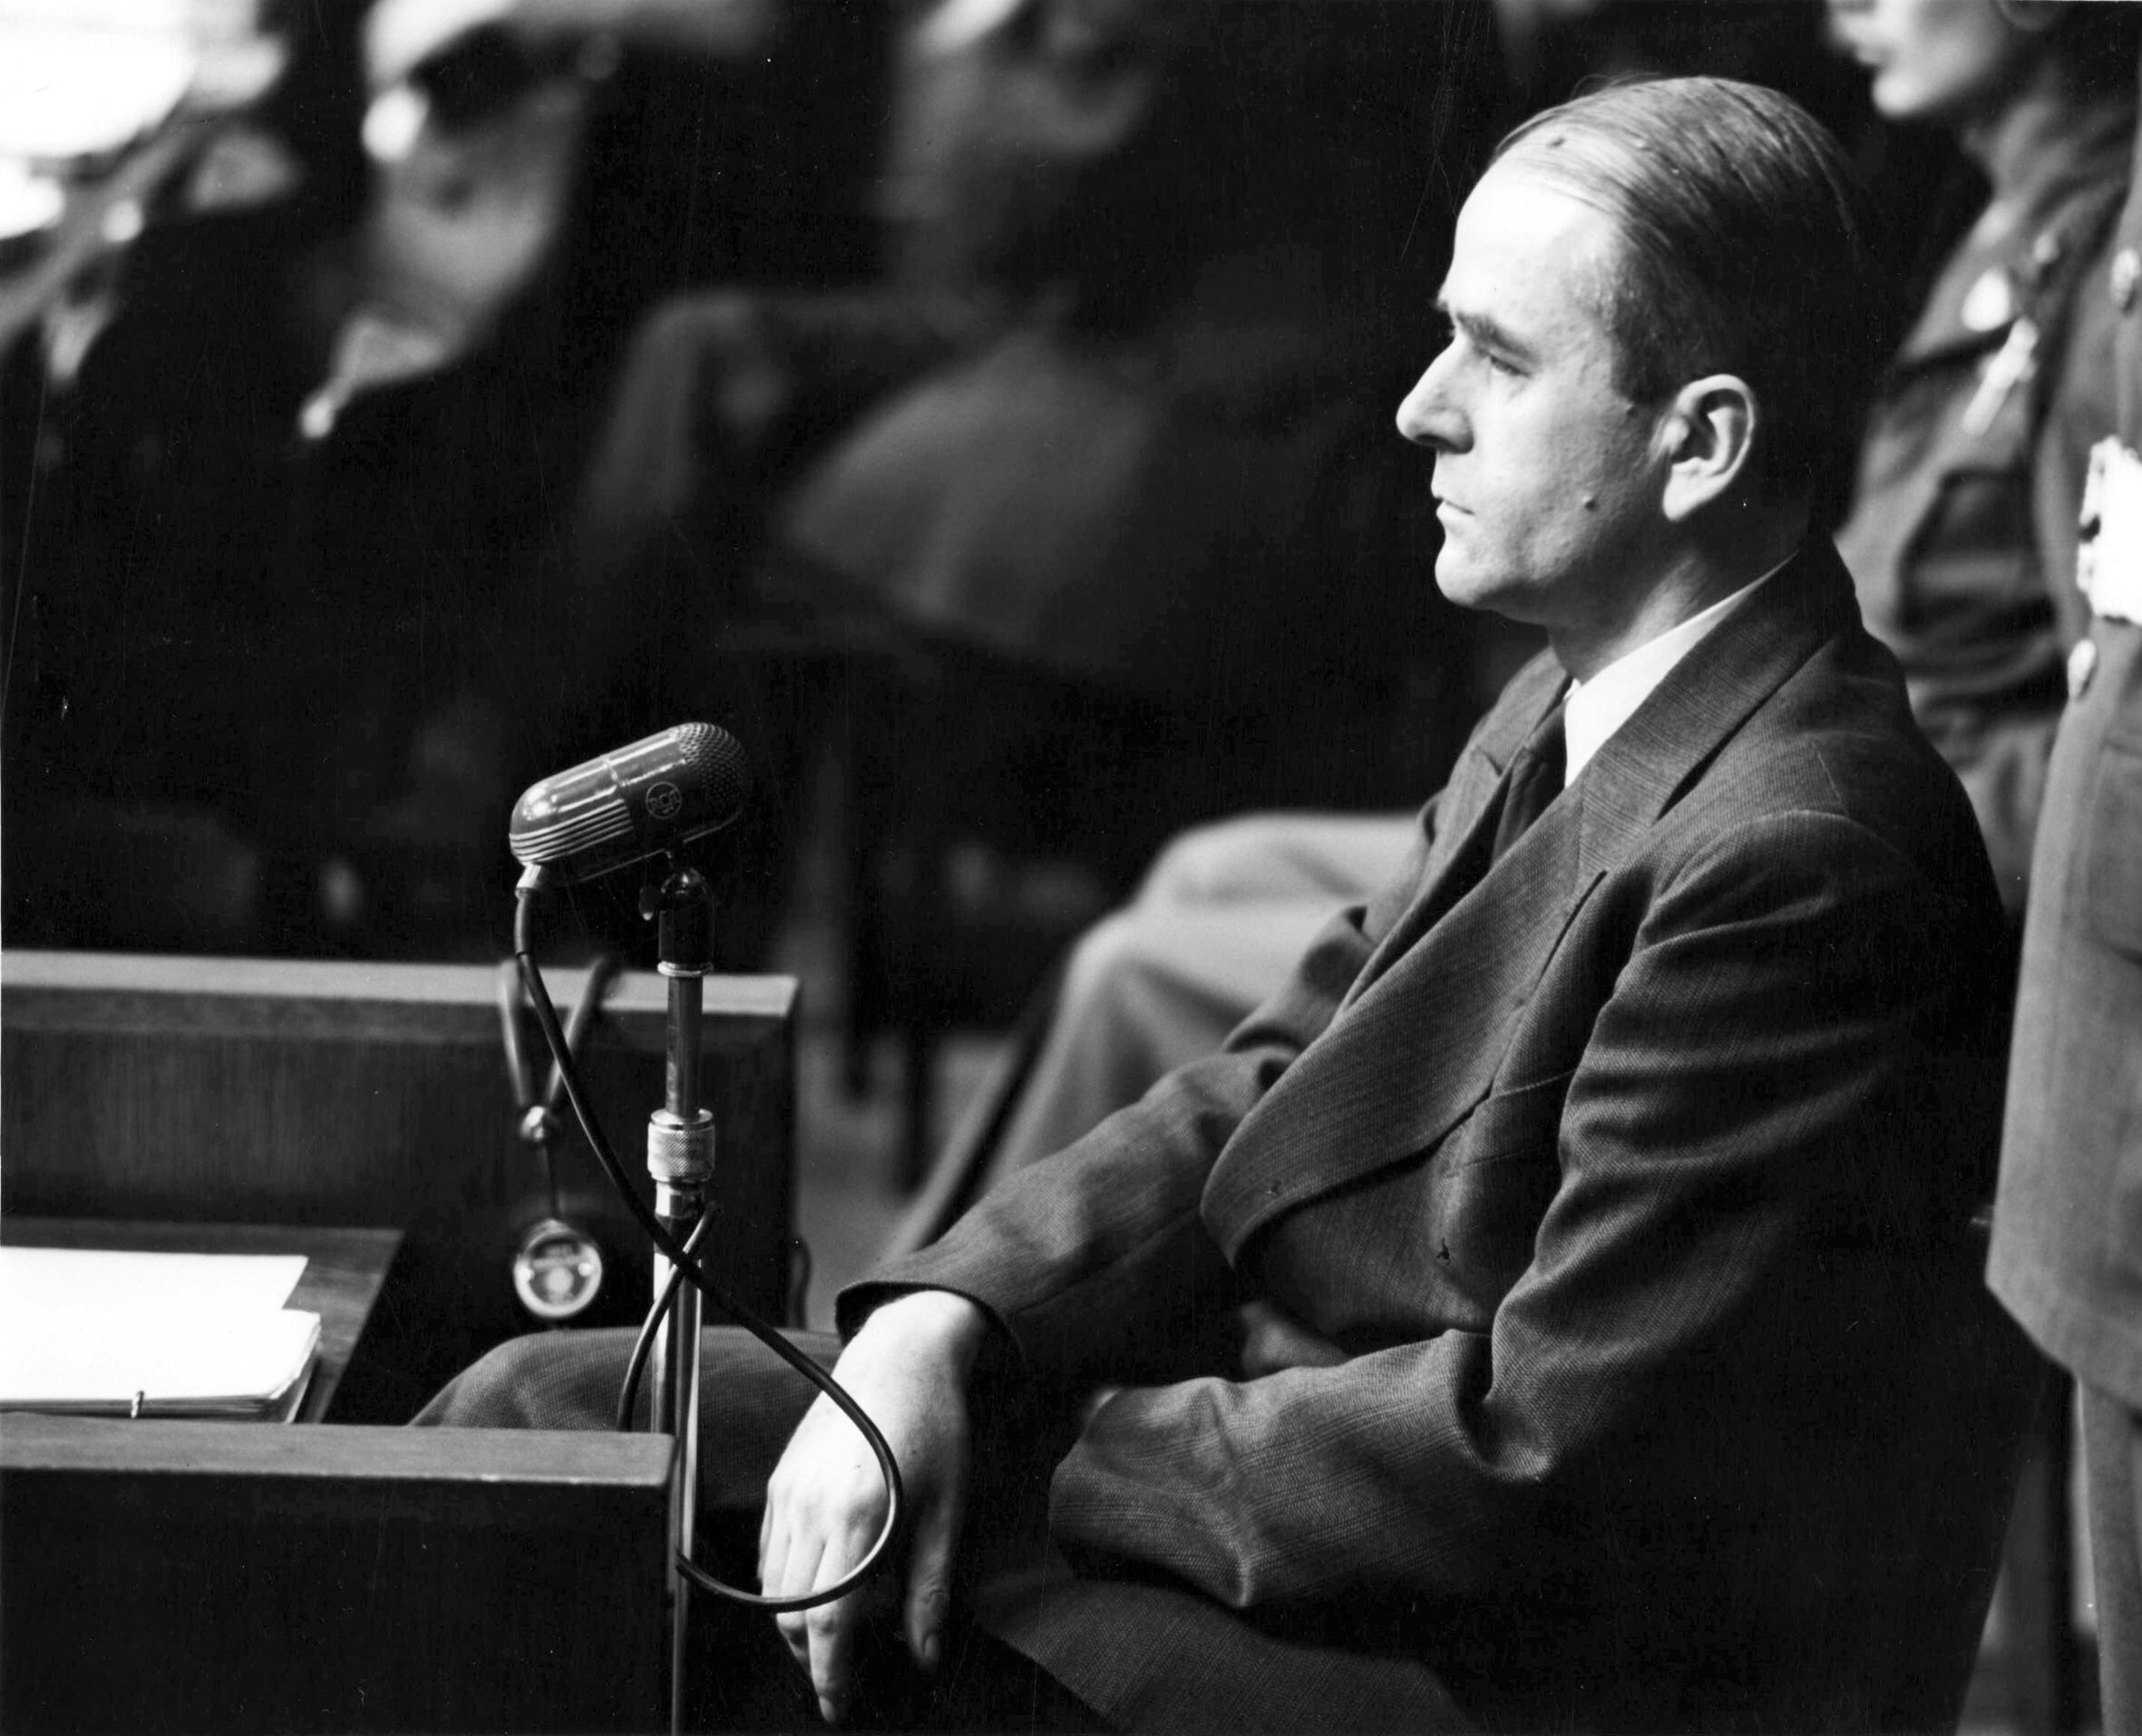 3 significant events in the life of albert speer Scorched earth policy relationship with hitler significance and evaluation rise to prominence albert speer life she claims he went of important events of.